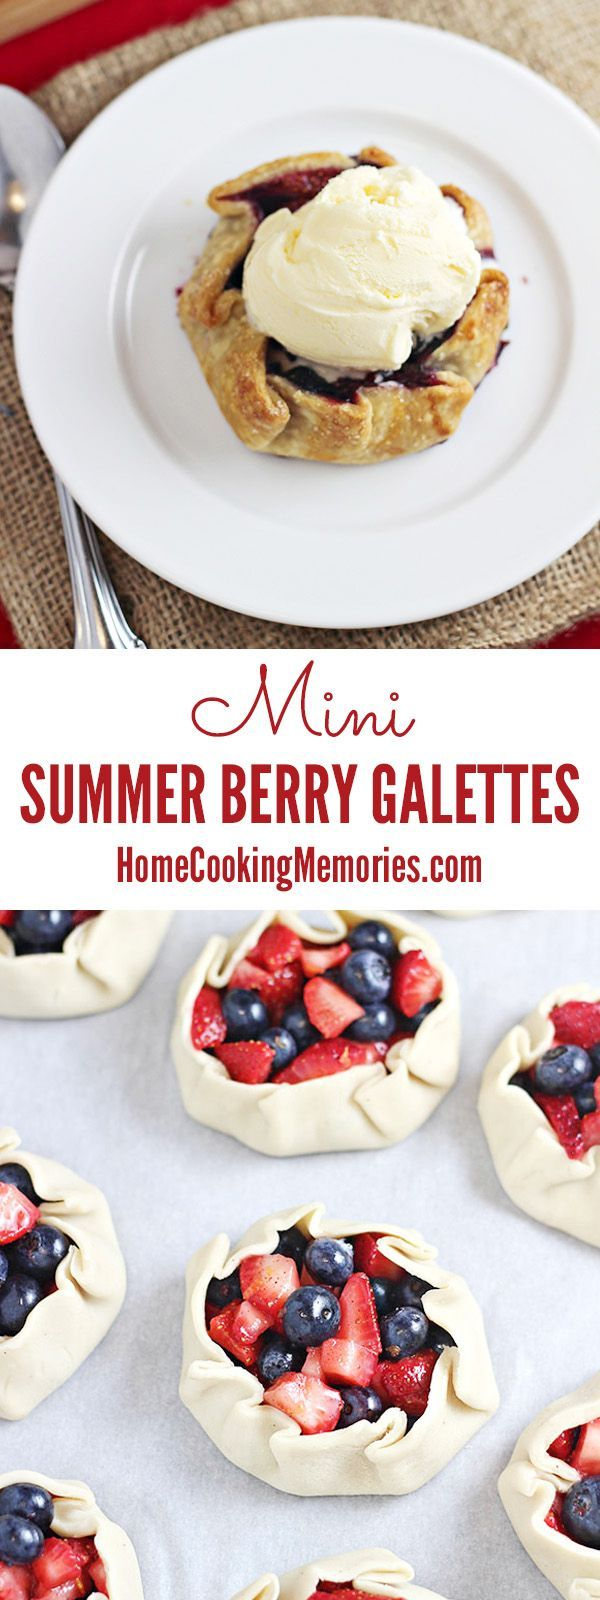 Photo of Mini Summer Berry Galettes